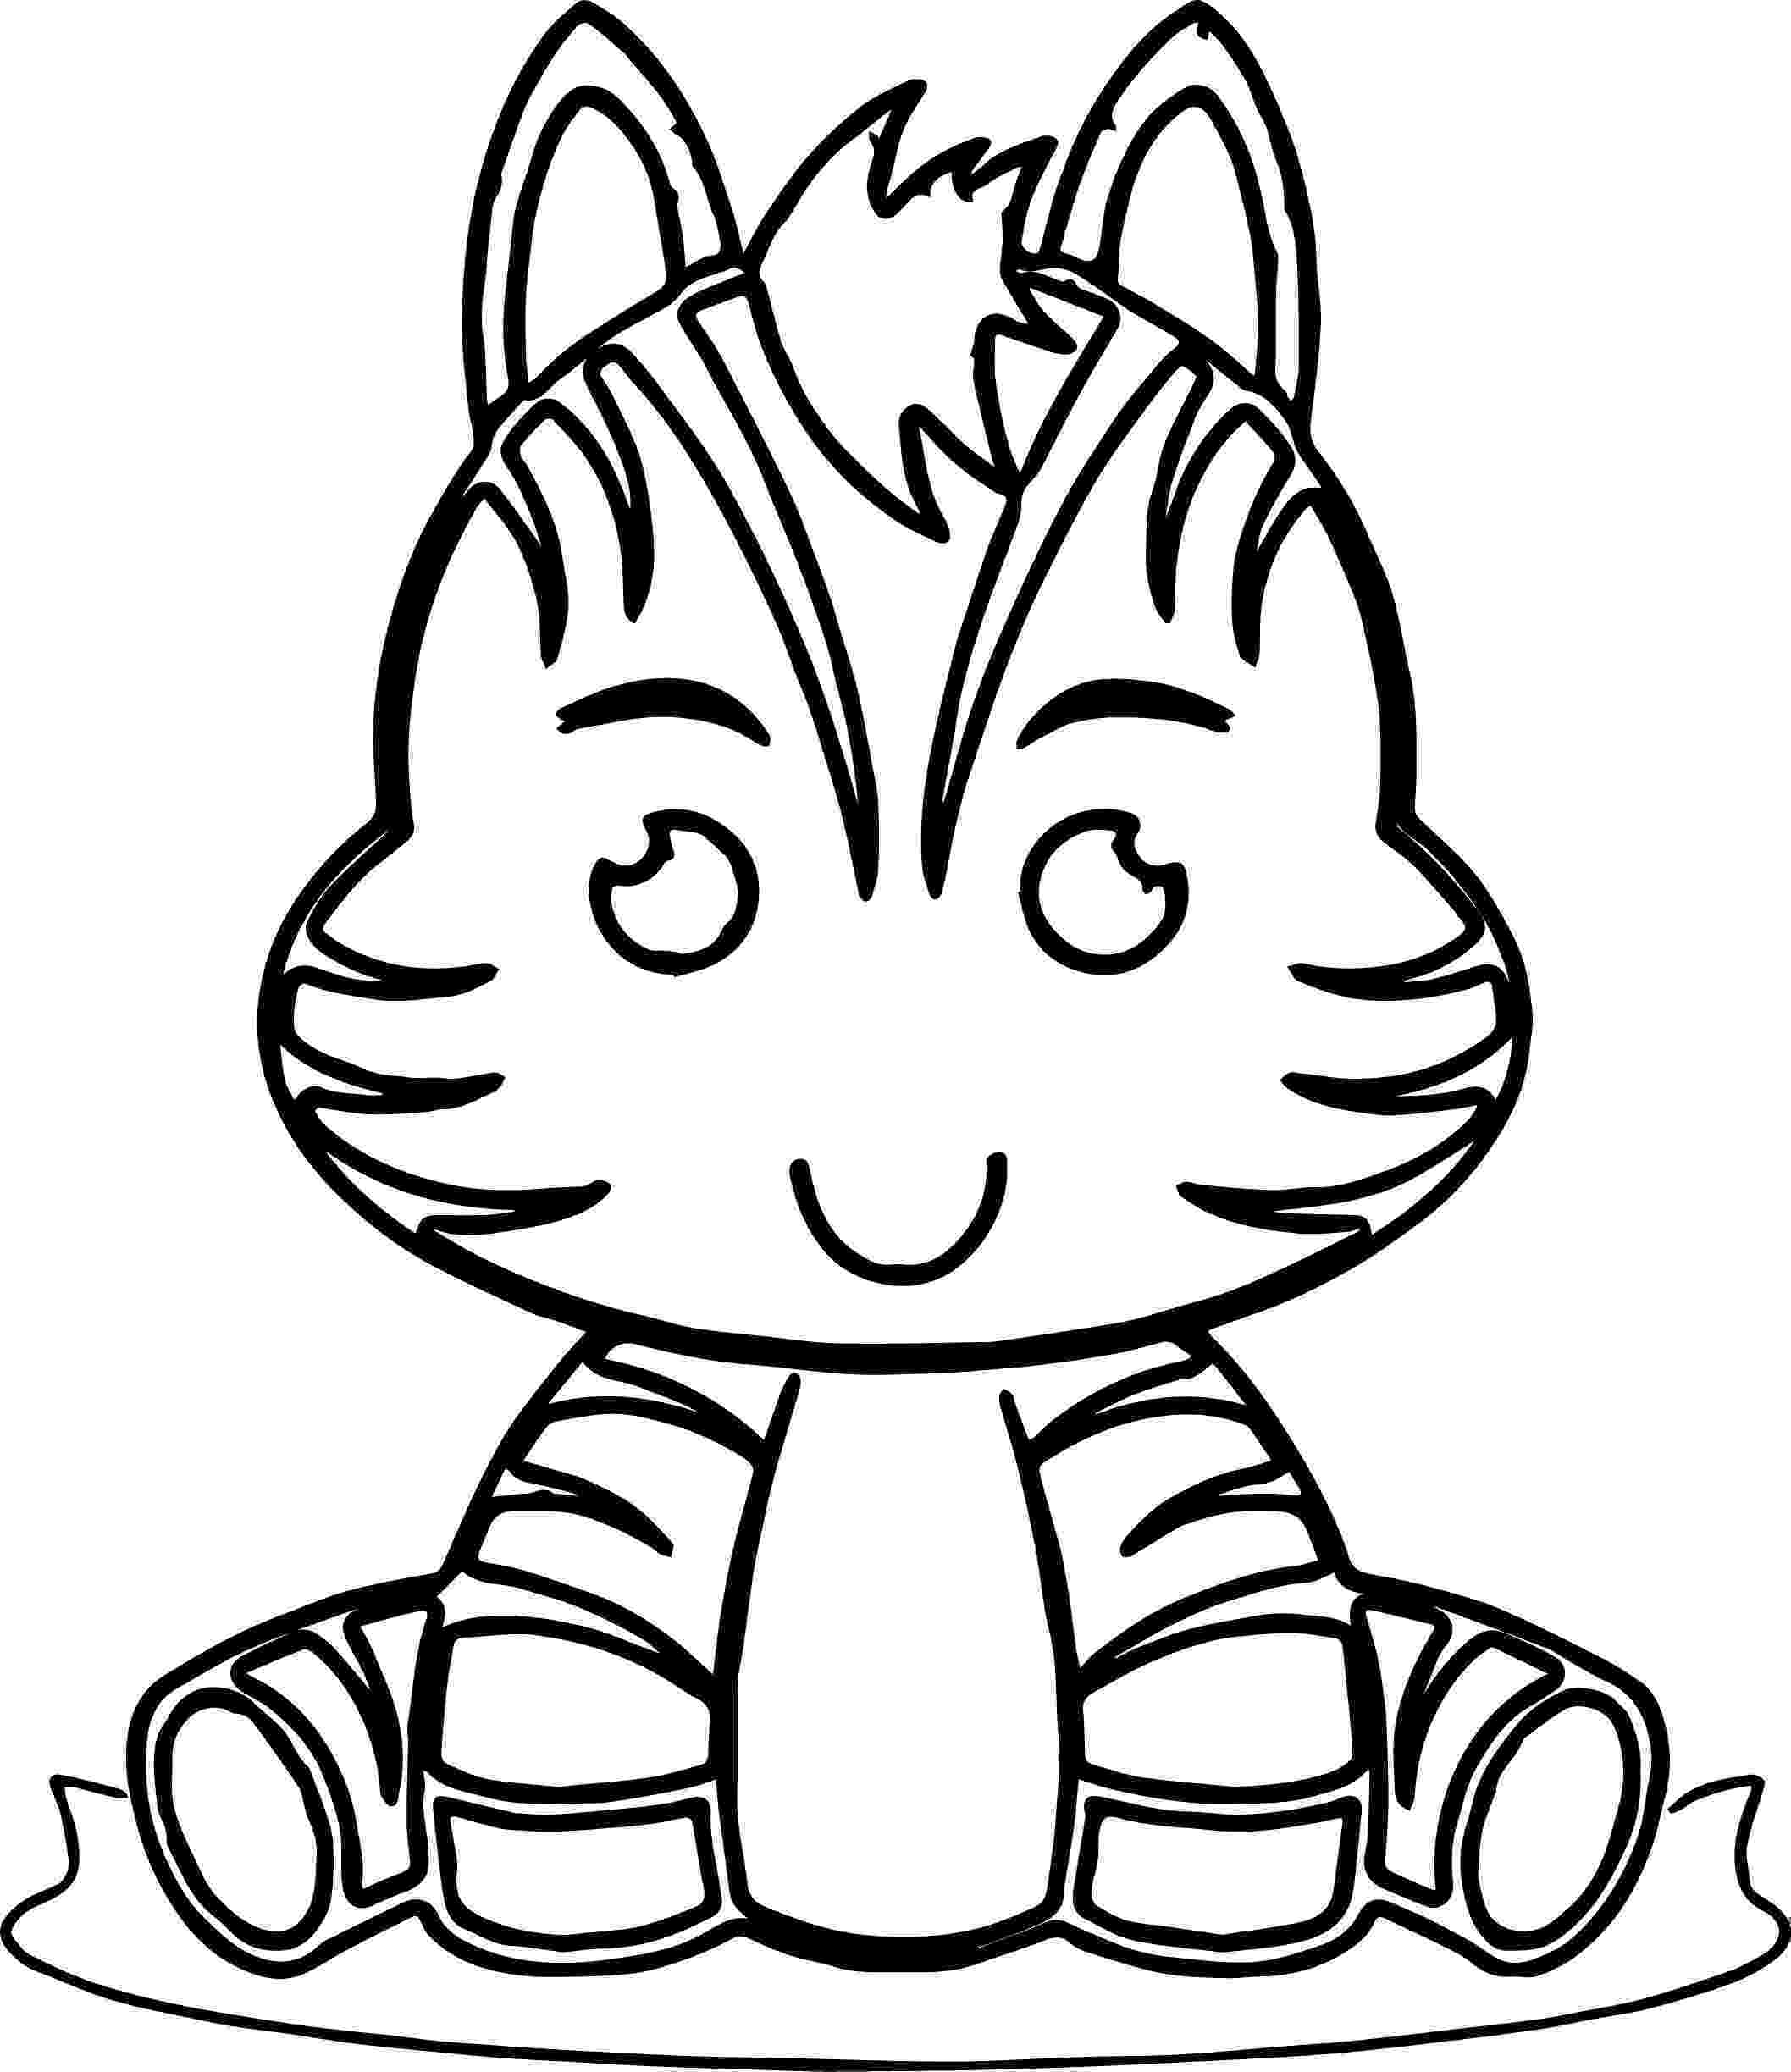 cute wild animals colouring pages zebra zoo wild animals miss kate cute coloring page cute pages wild colouring animals